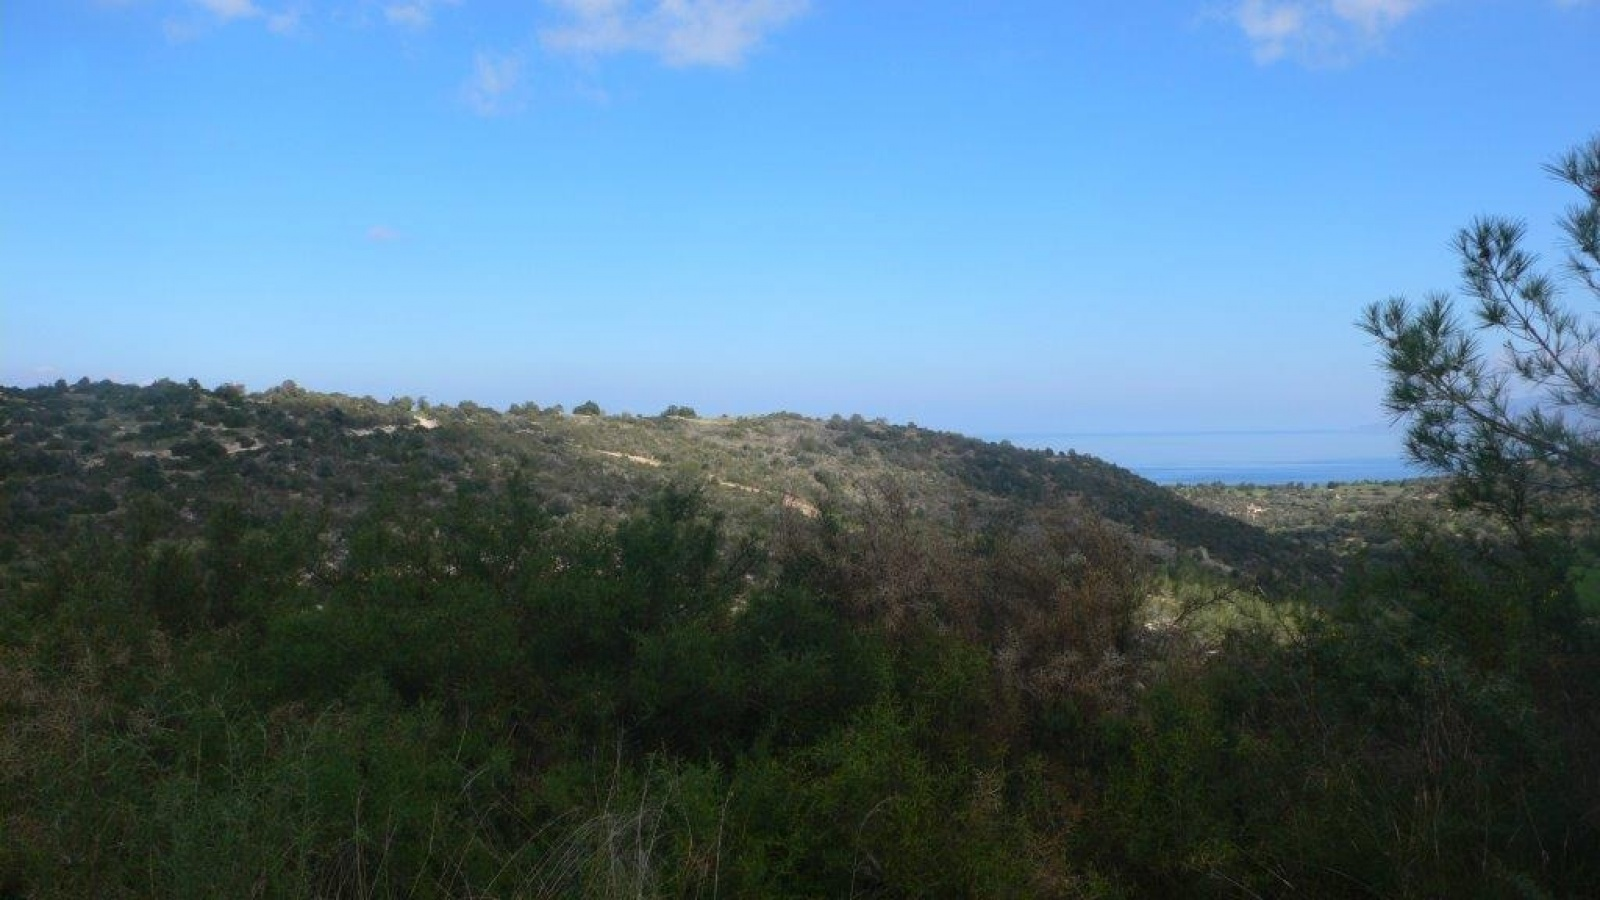 Residential Land - Neo Chorio Residential Lnd